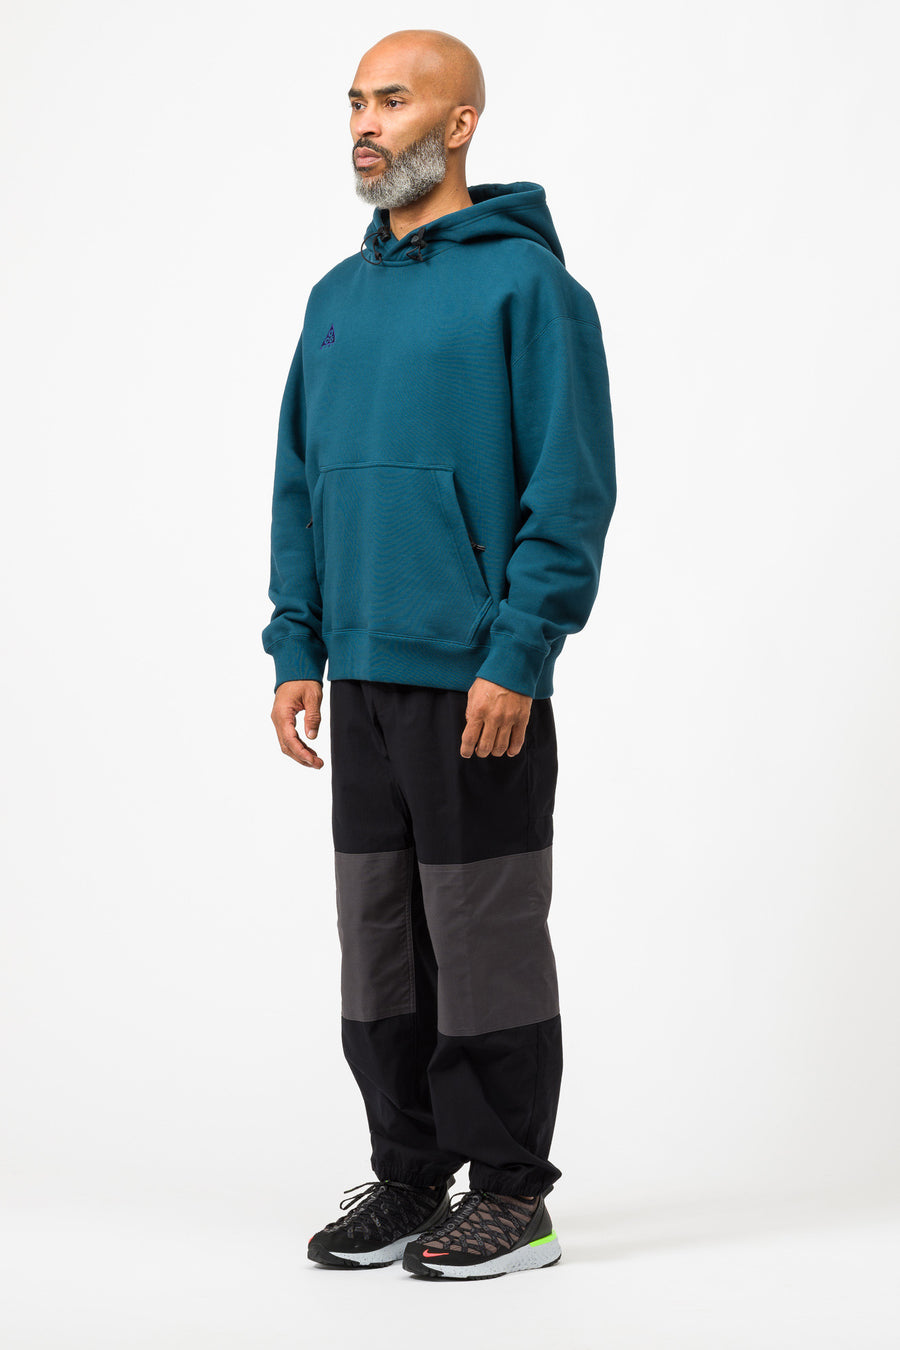 Nike ACG Pullover Hoodie in Midnight Turquoise/Purple - Notre